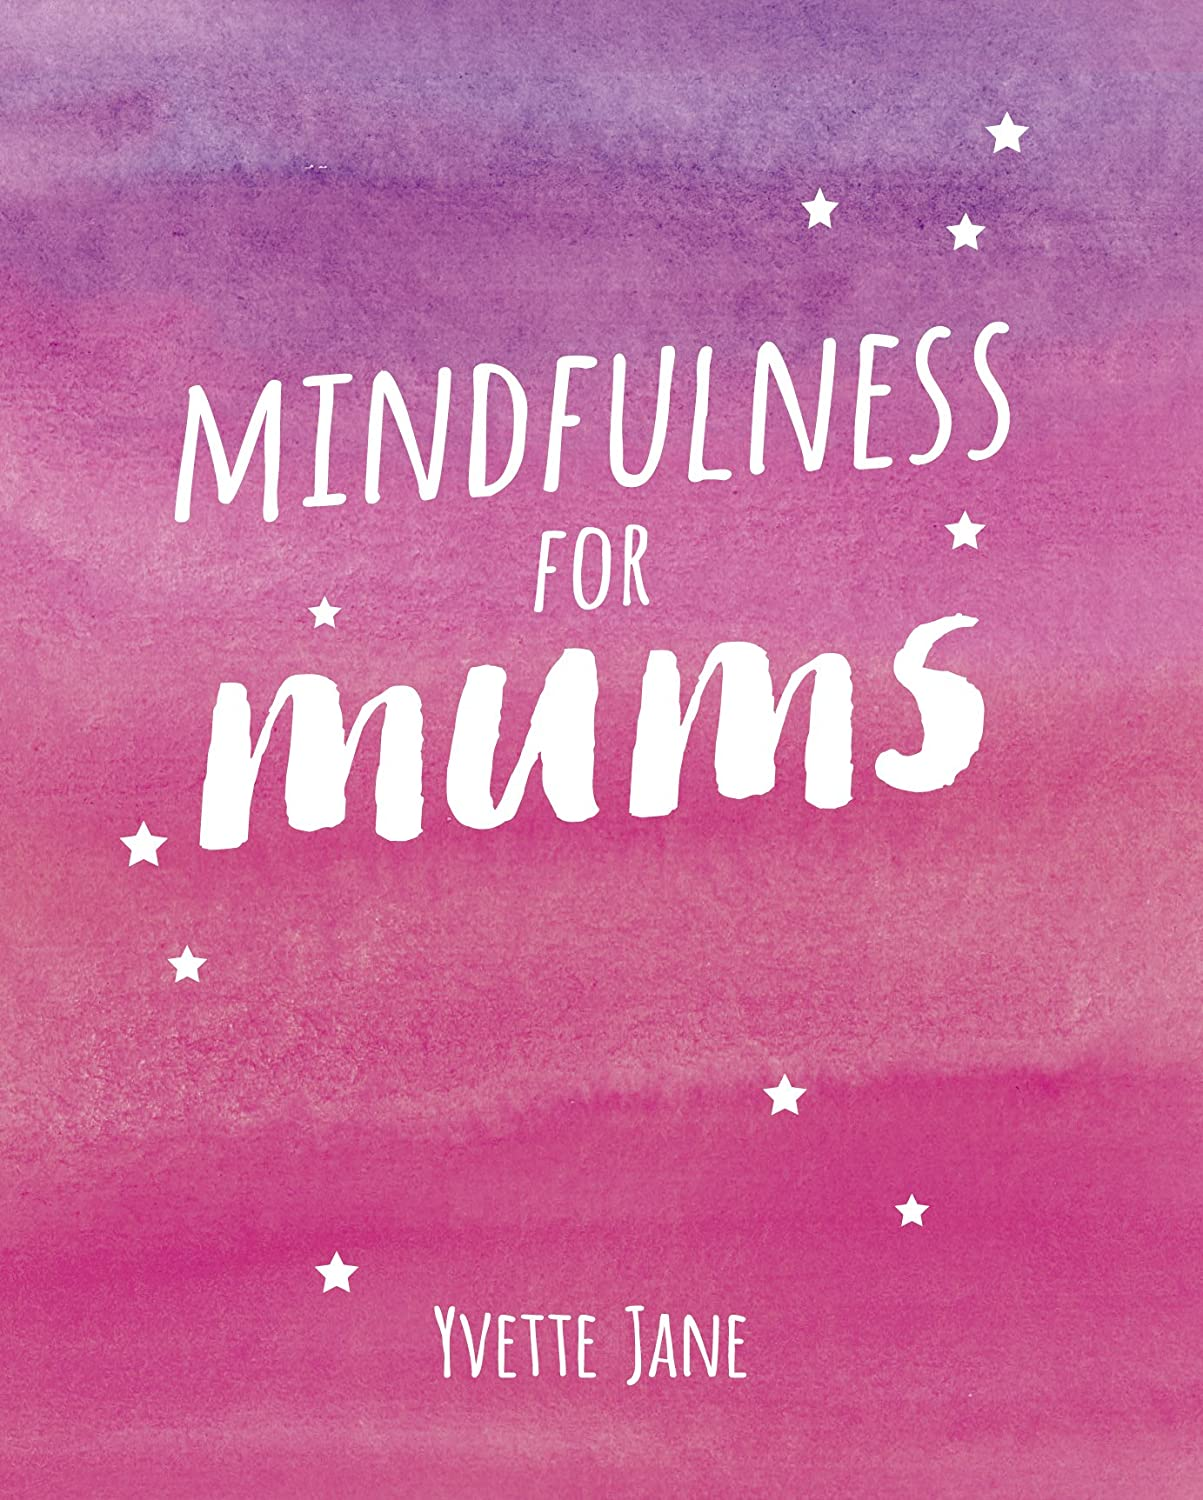 Mindfulness for Mums by Yvette Jane